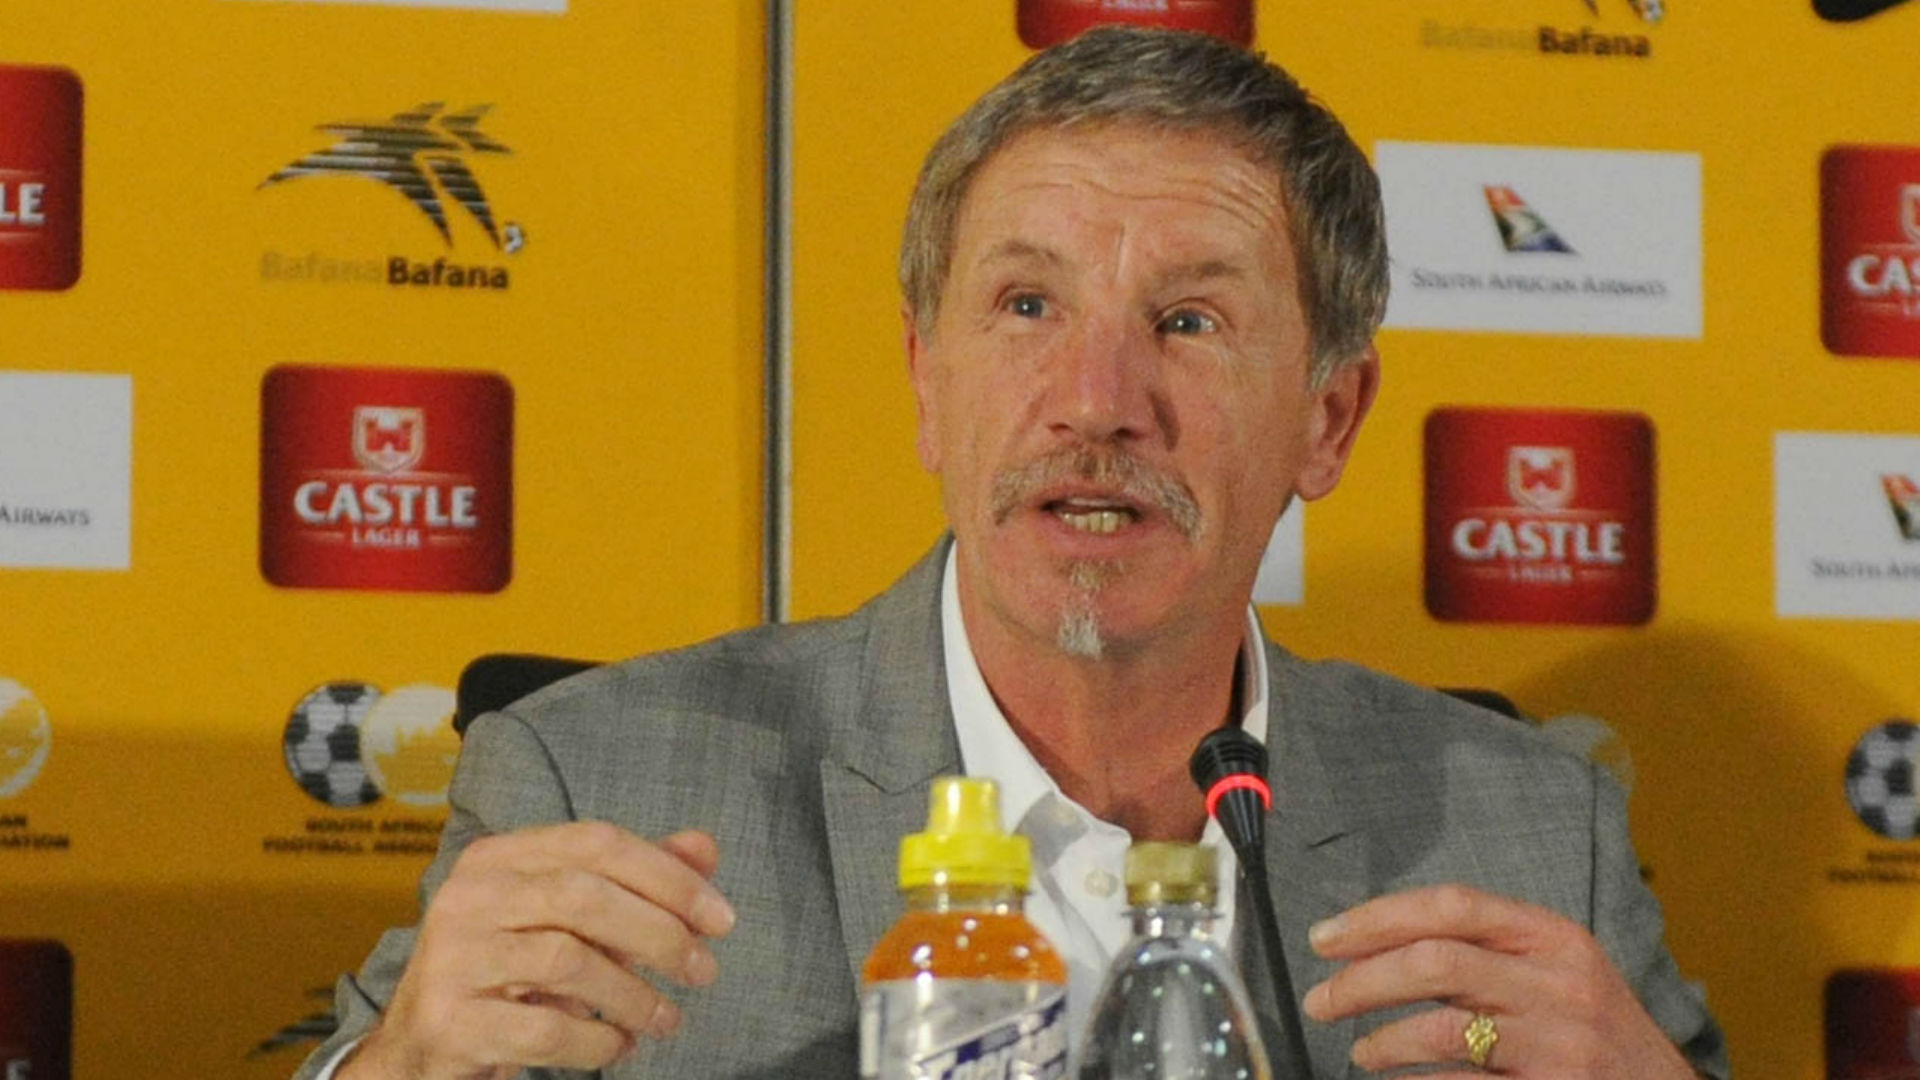 Bafana defeated as Cape Verde boost World Cup hopes